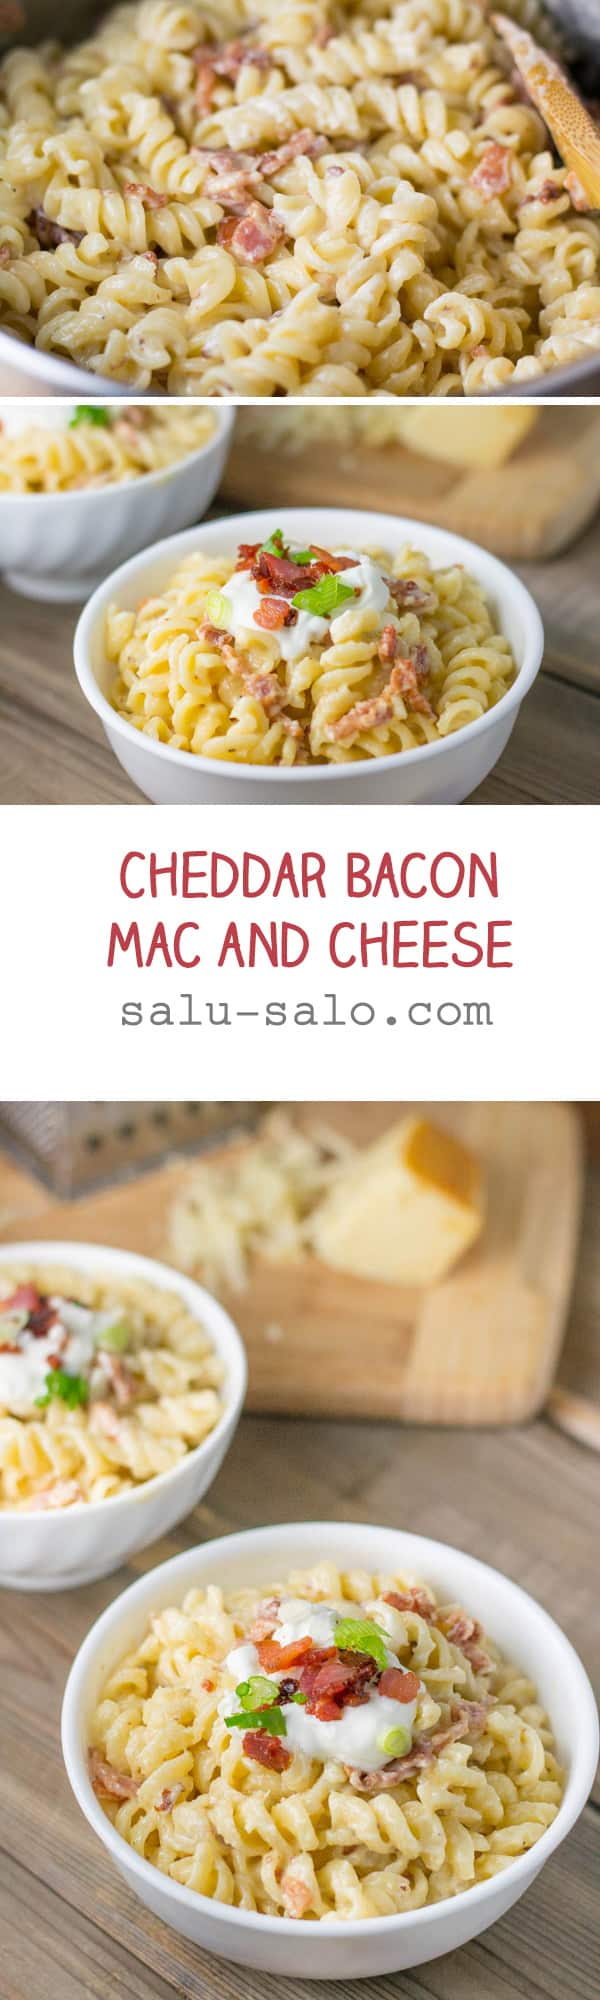 Cheddar Bacon Mac and Cheese - Salu Salo Recipes